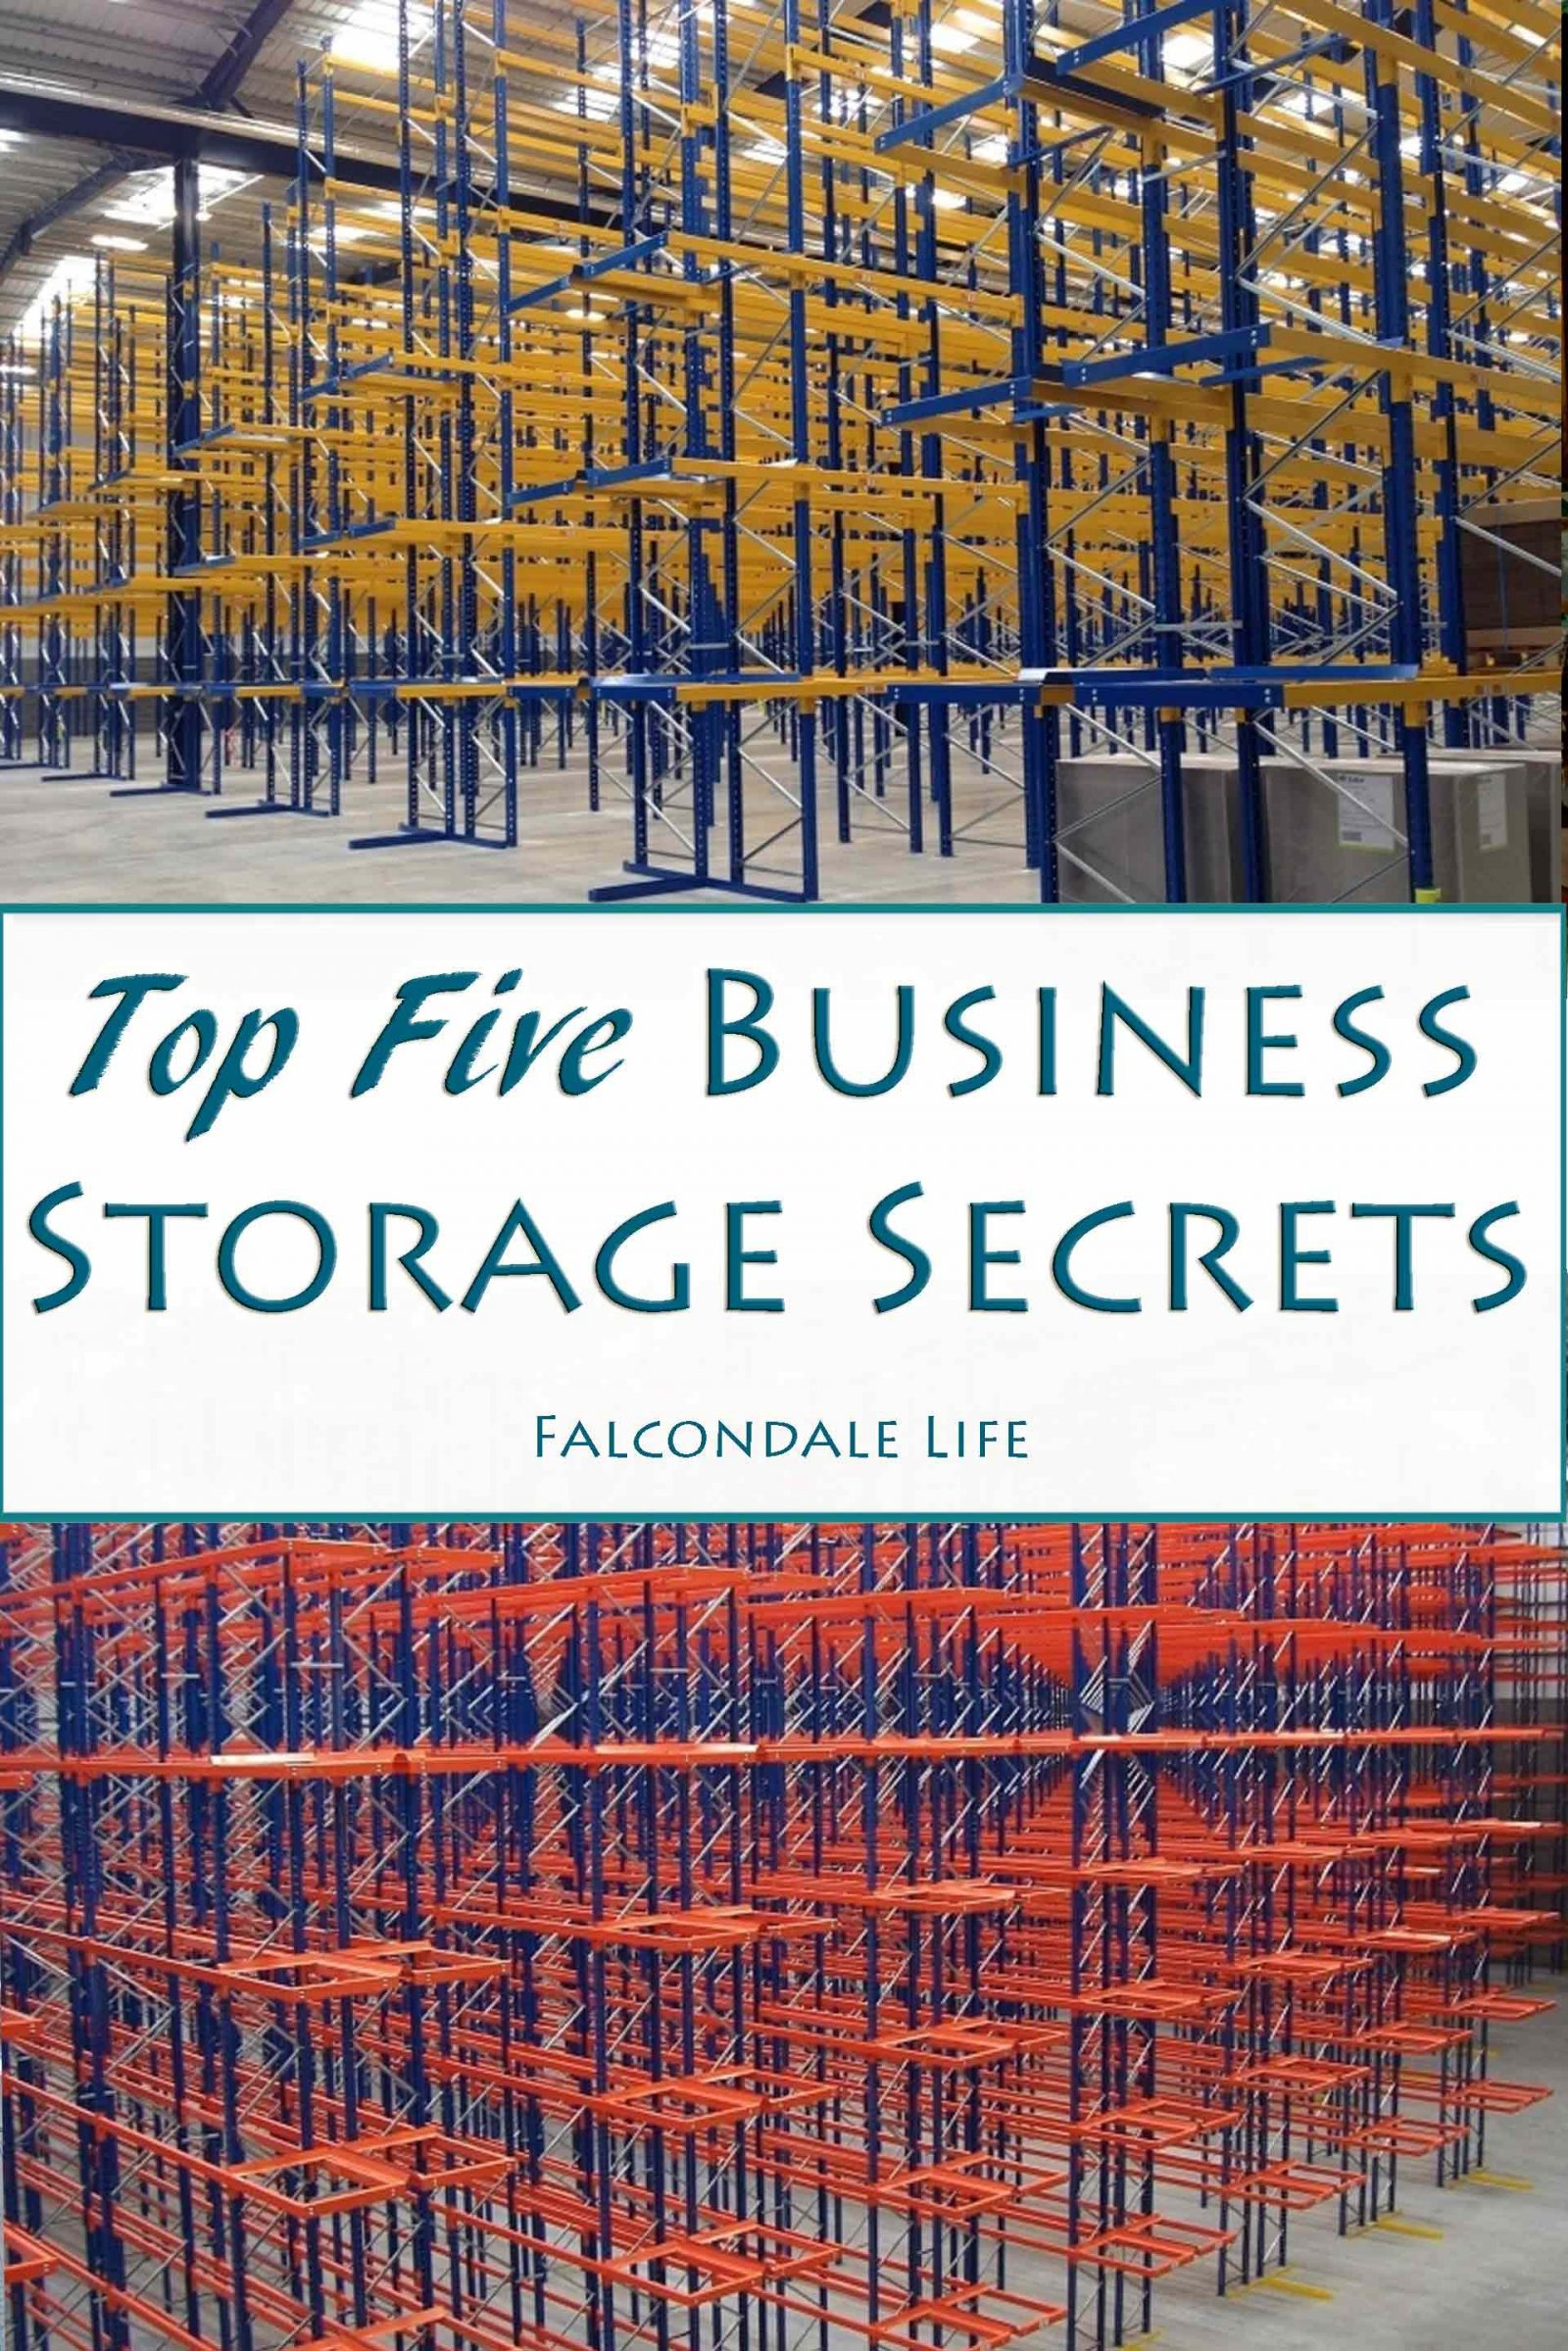 #ad Top Five Business Storage Secrets for Everyone on Falcondale Life blog. Improve processes with pallet racking, computerise stock control or use external storage. Add storage between floors and improve home business storage. Warehouse racking for small and medium enterprises.